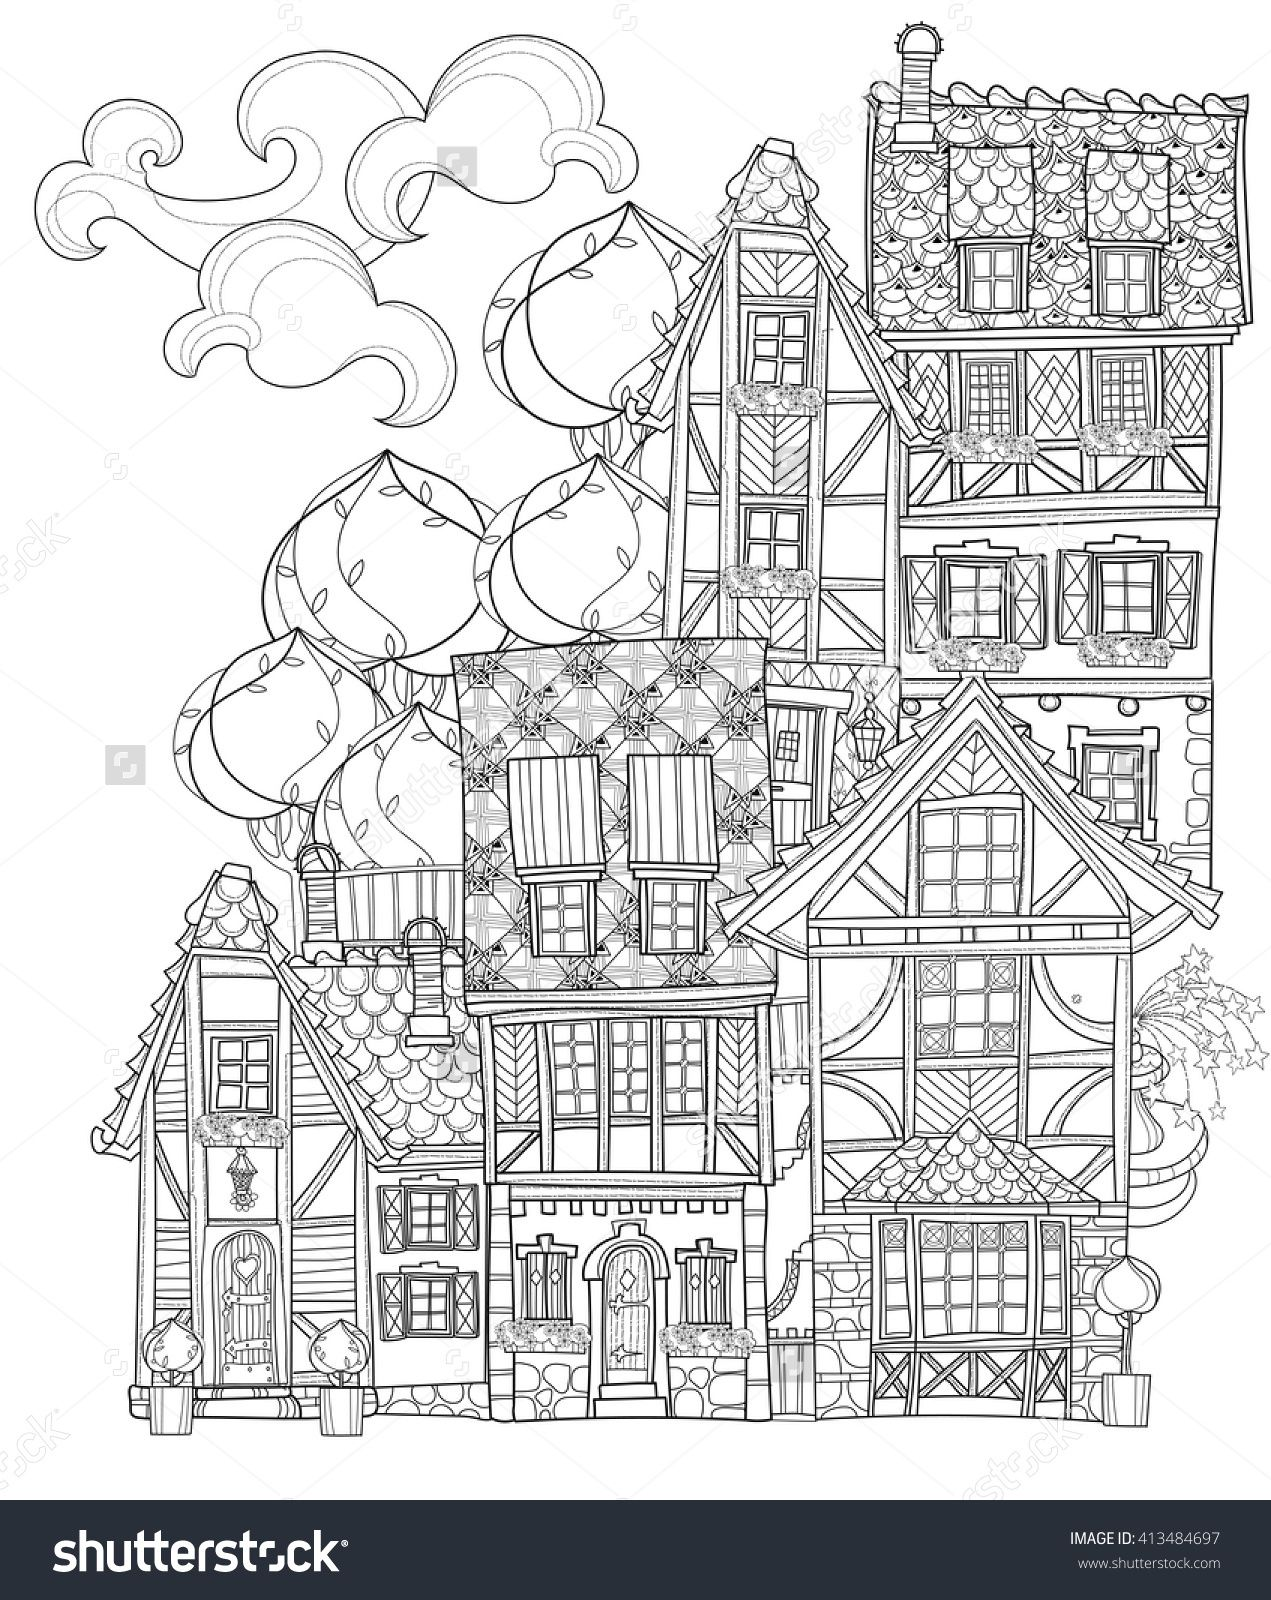 Cute fairy tale town coloring adult page